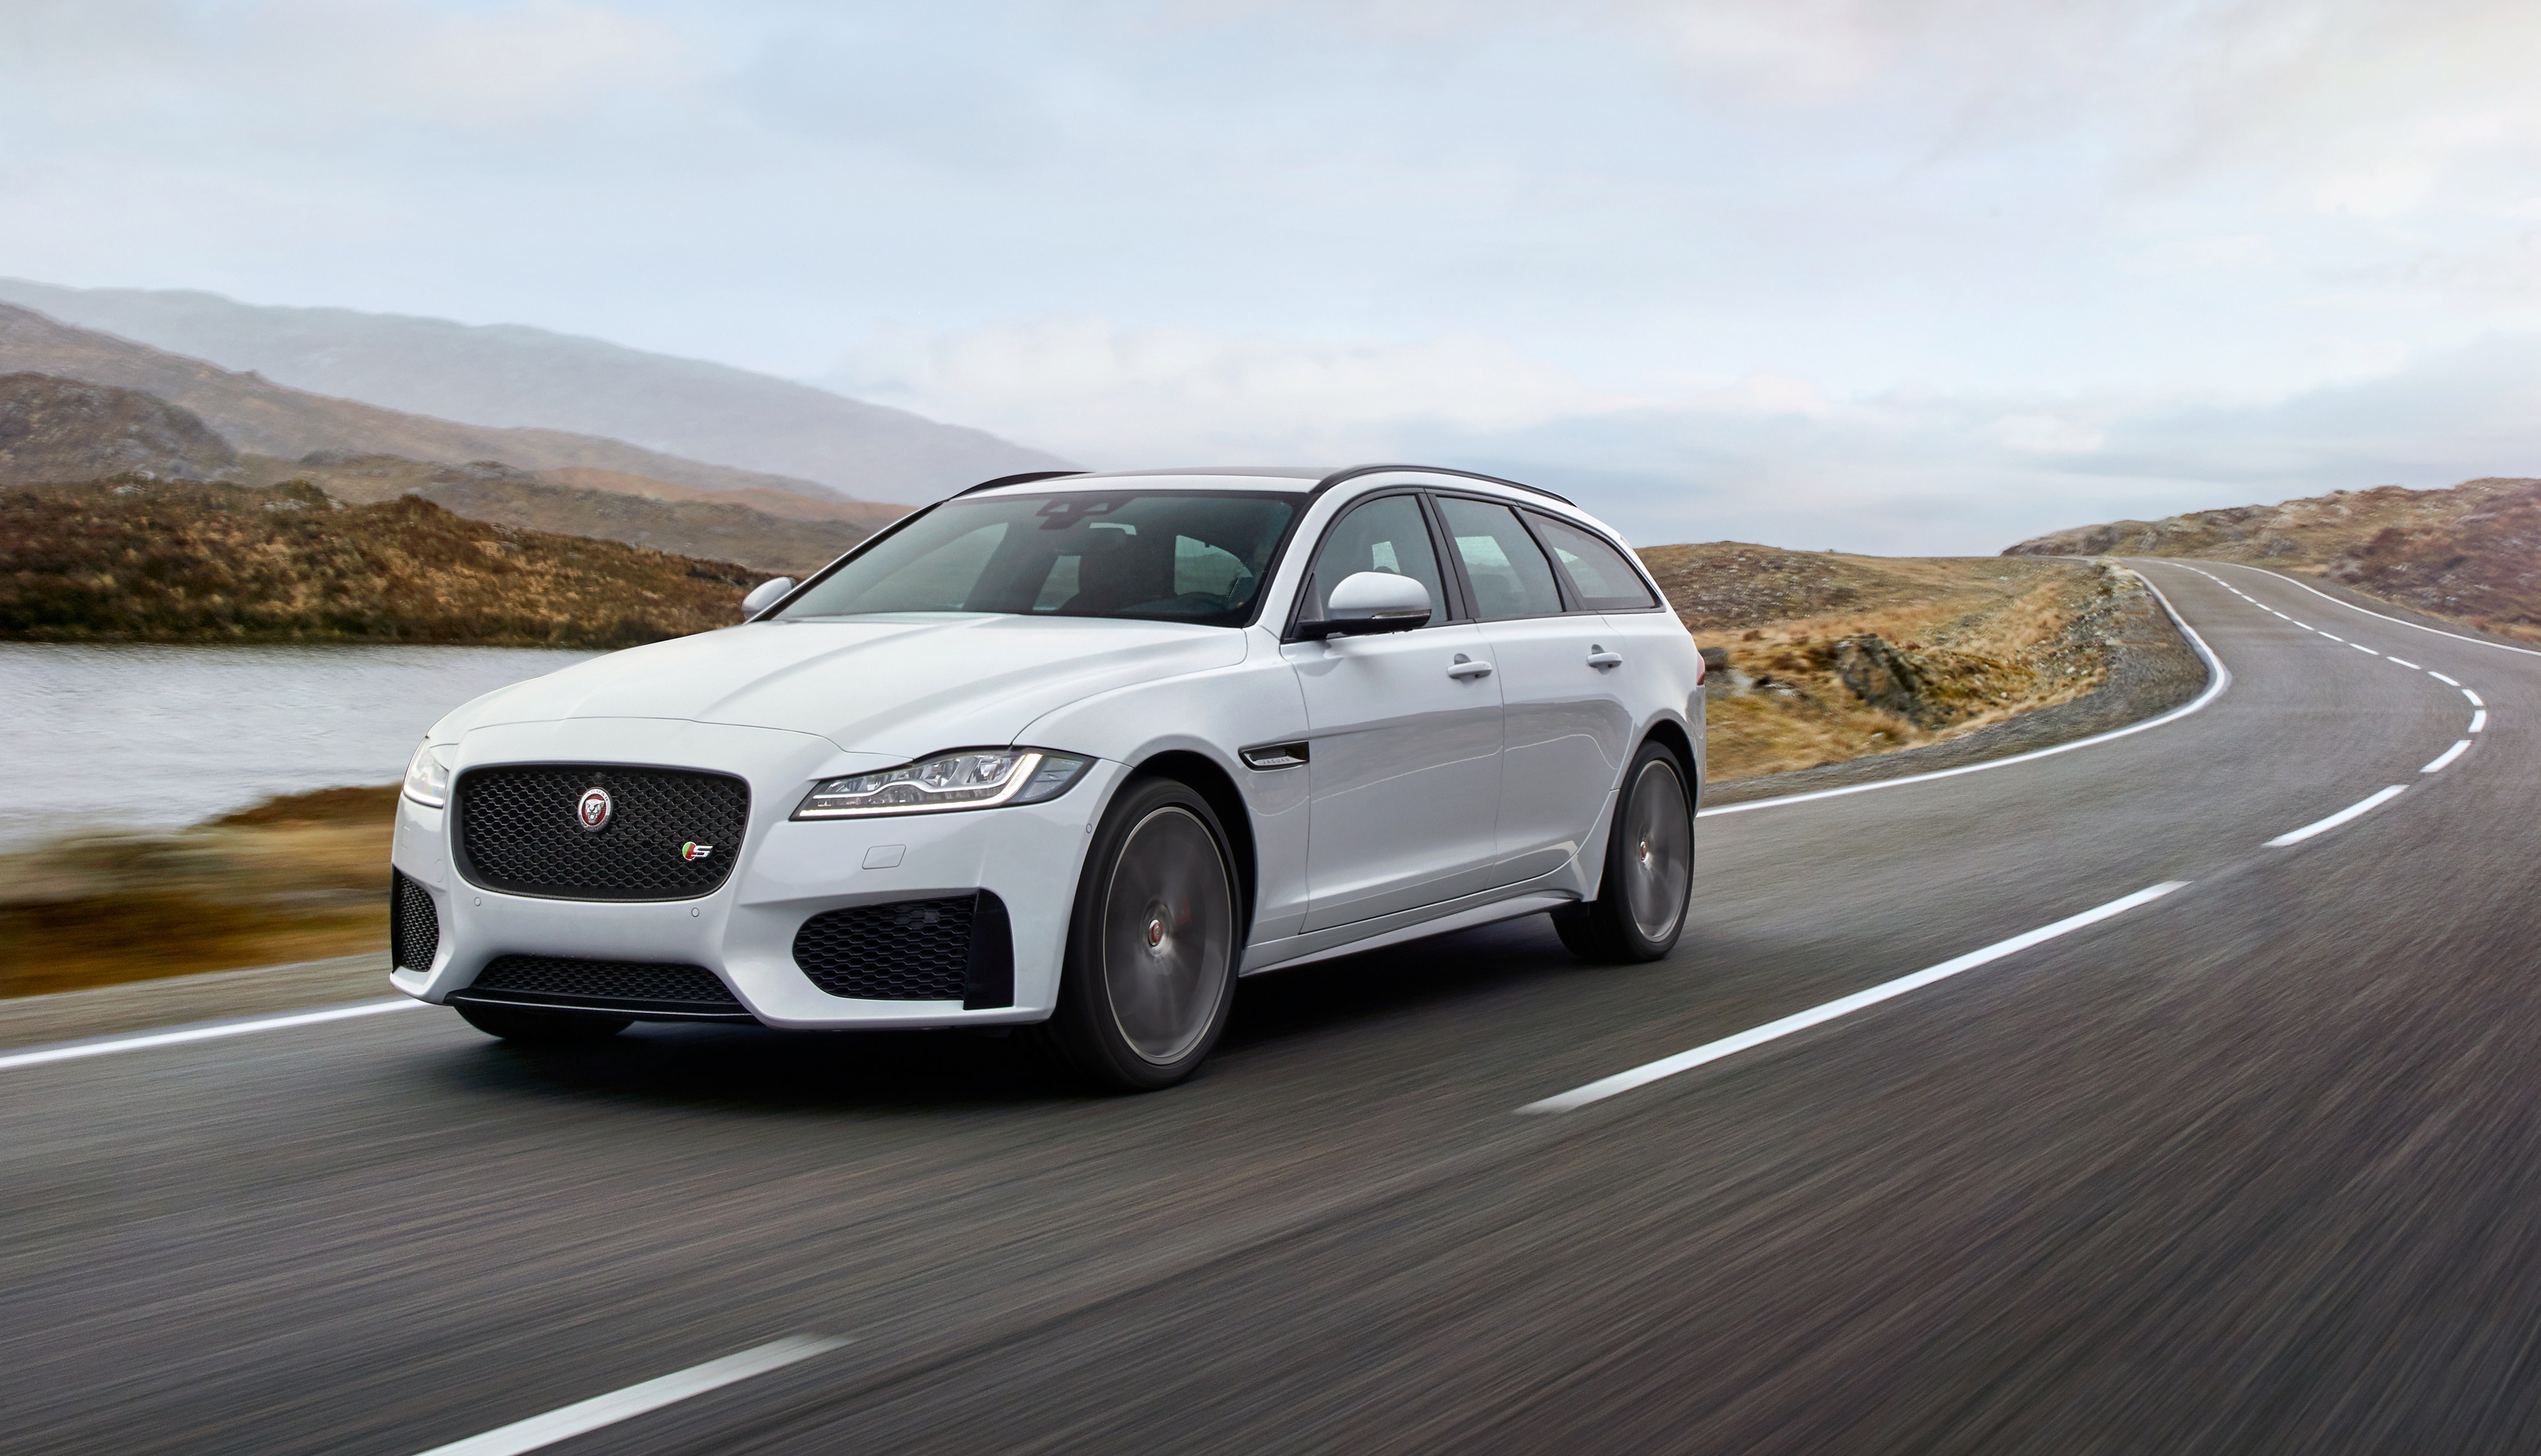 designs a by with to jaguar personalize xf how shows jag class